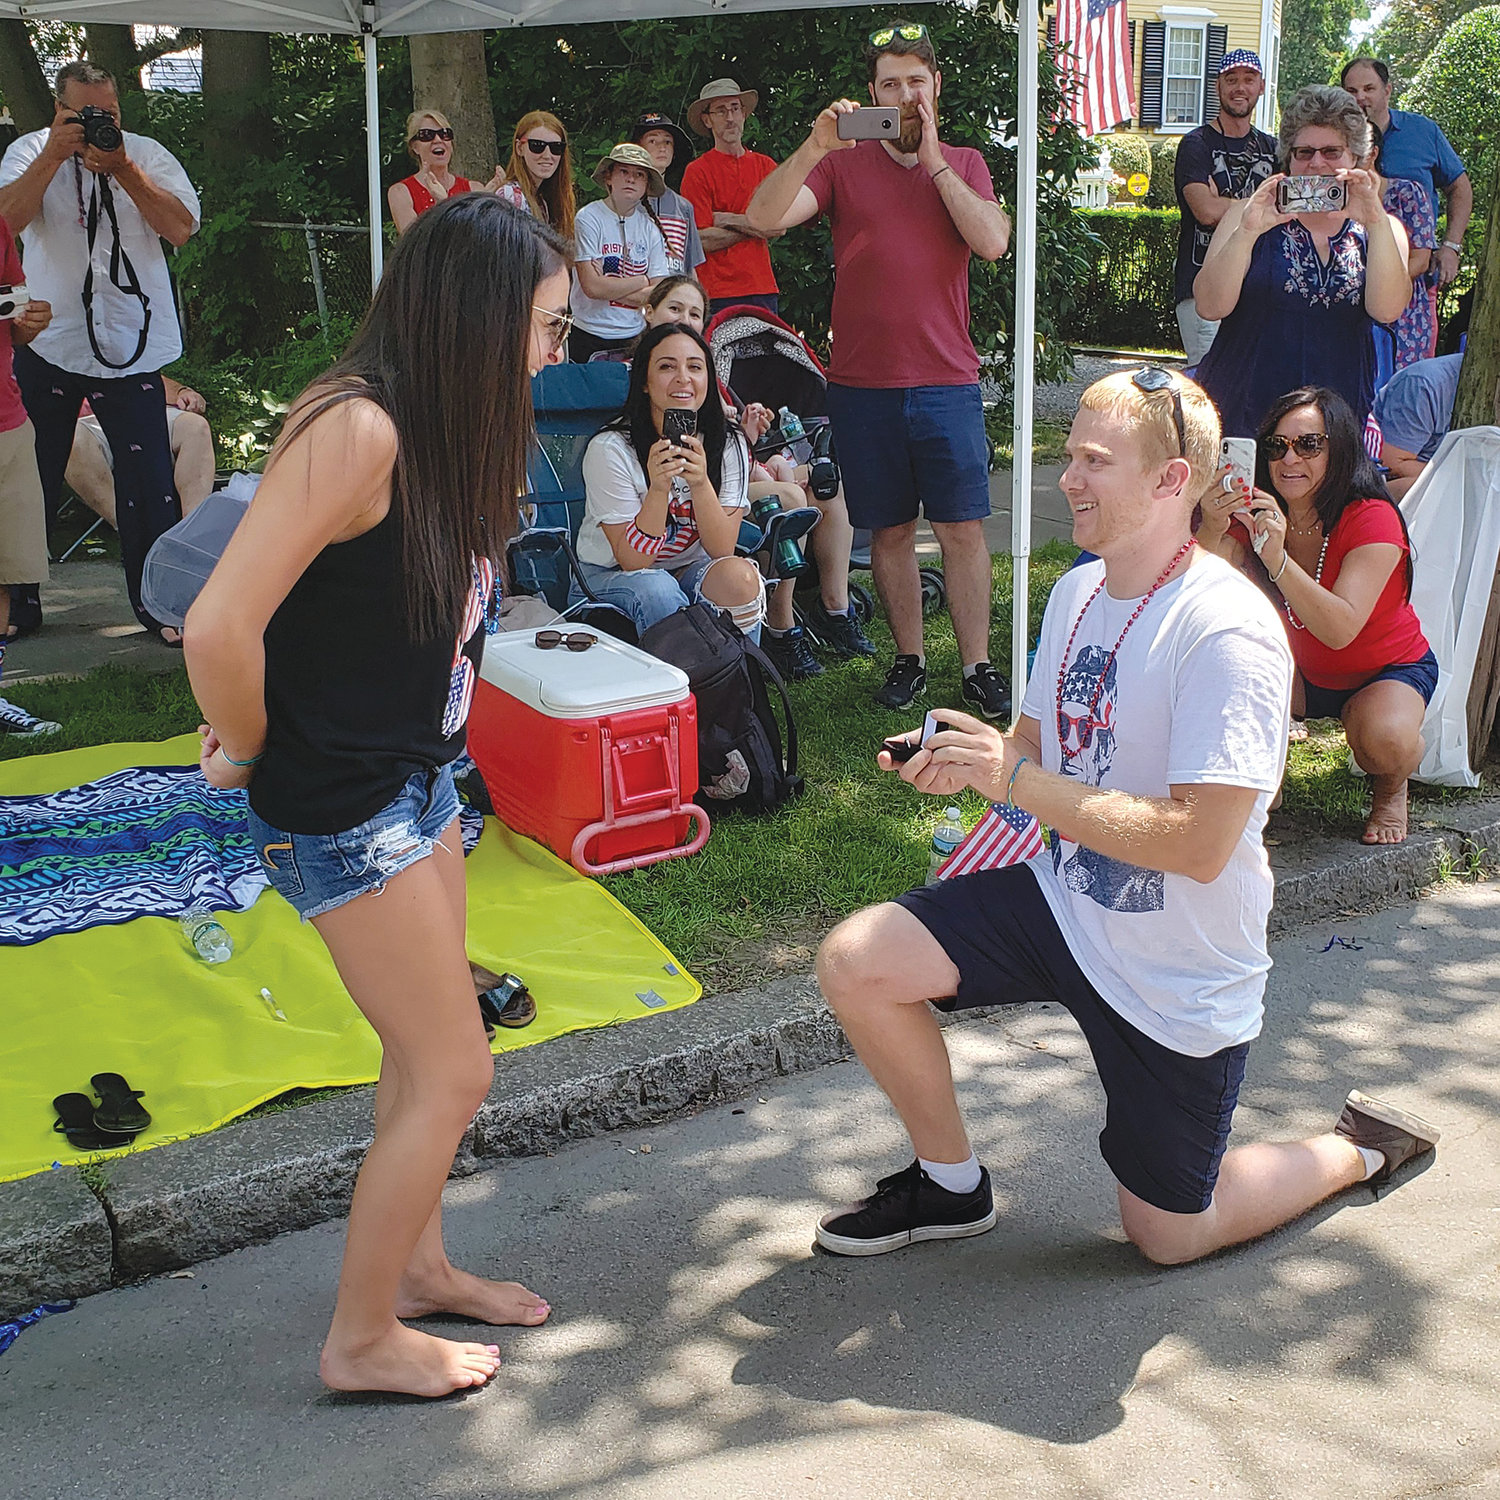 Skylar Ellison gets on bended knee and proposes to Brianna Costa  during the Bristol Fourth of July Parade last Thursday.